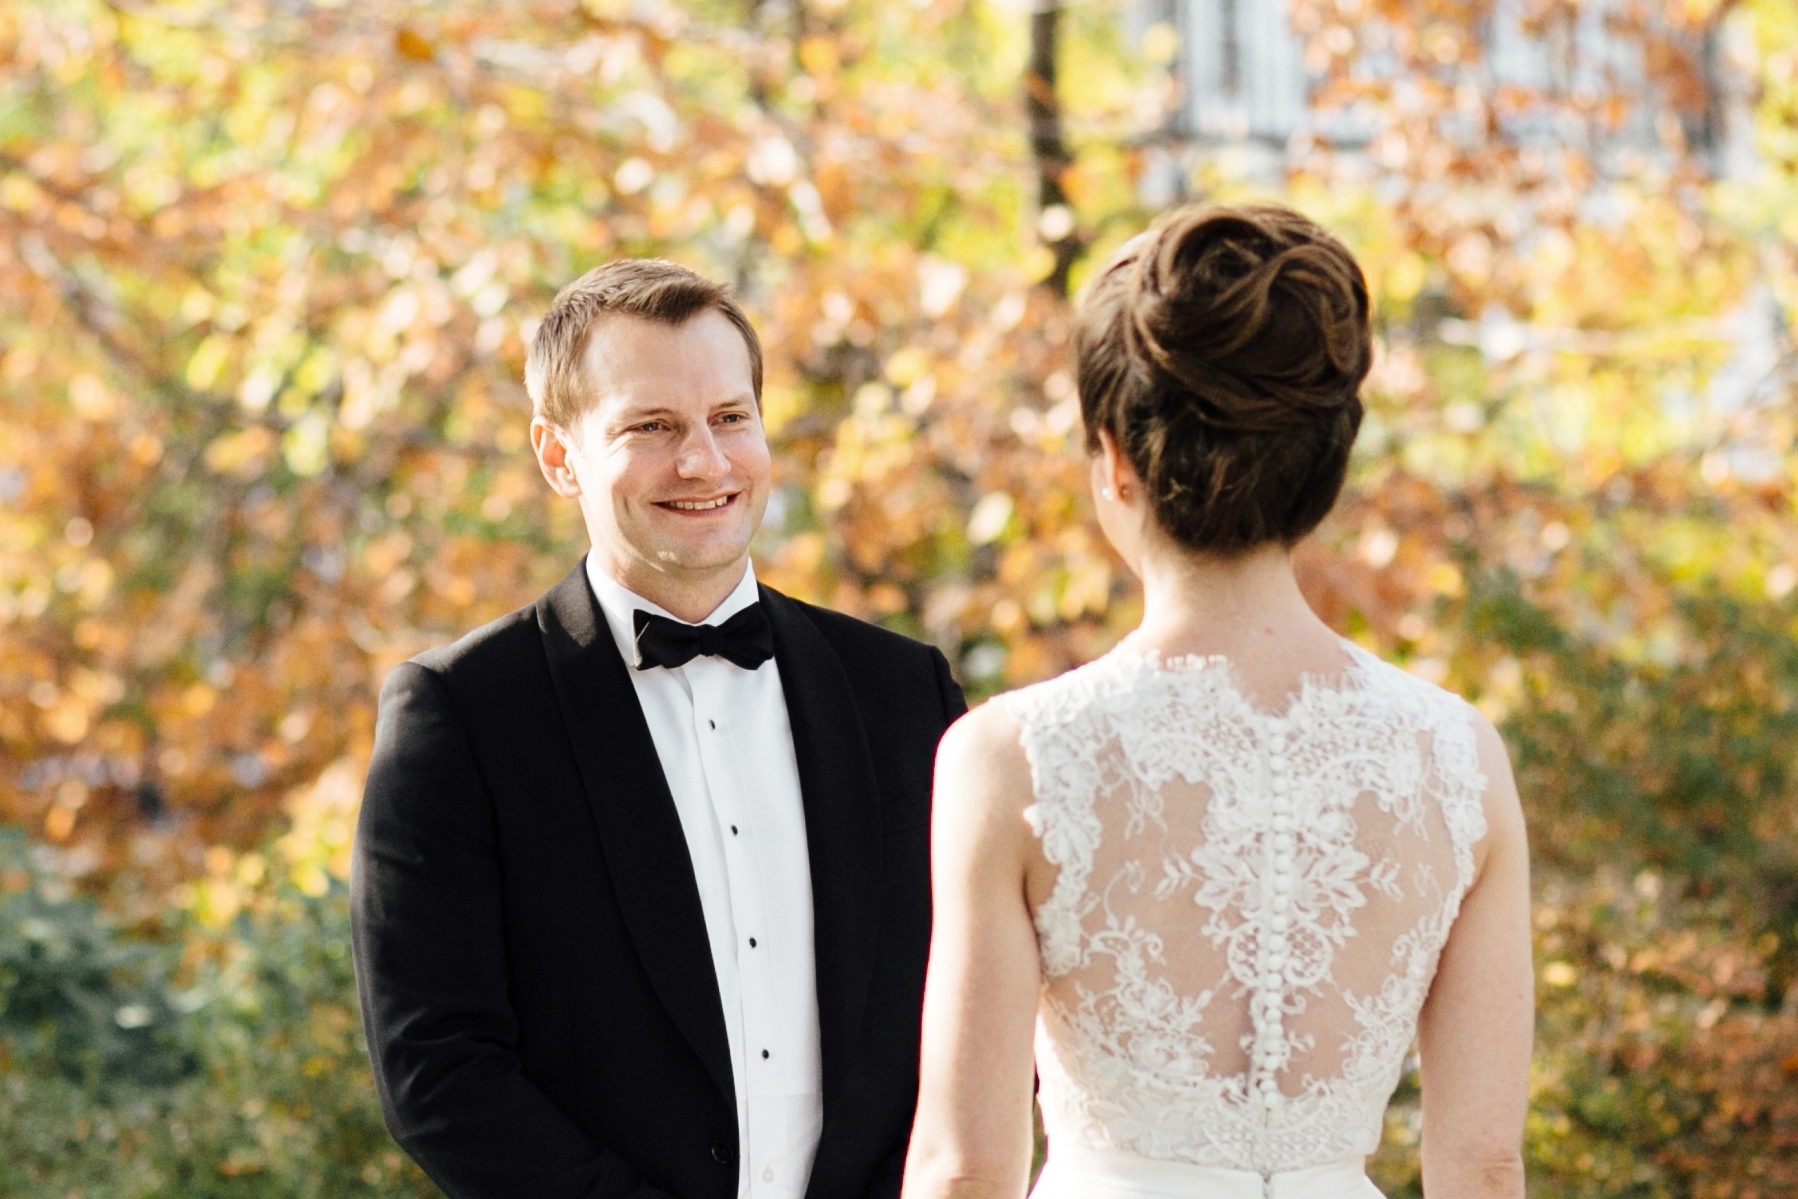 First Look of bride and groom at Meridian House in DC - Maria Vicencio Photography Weddings